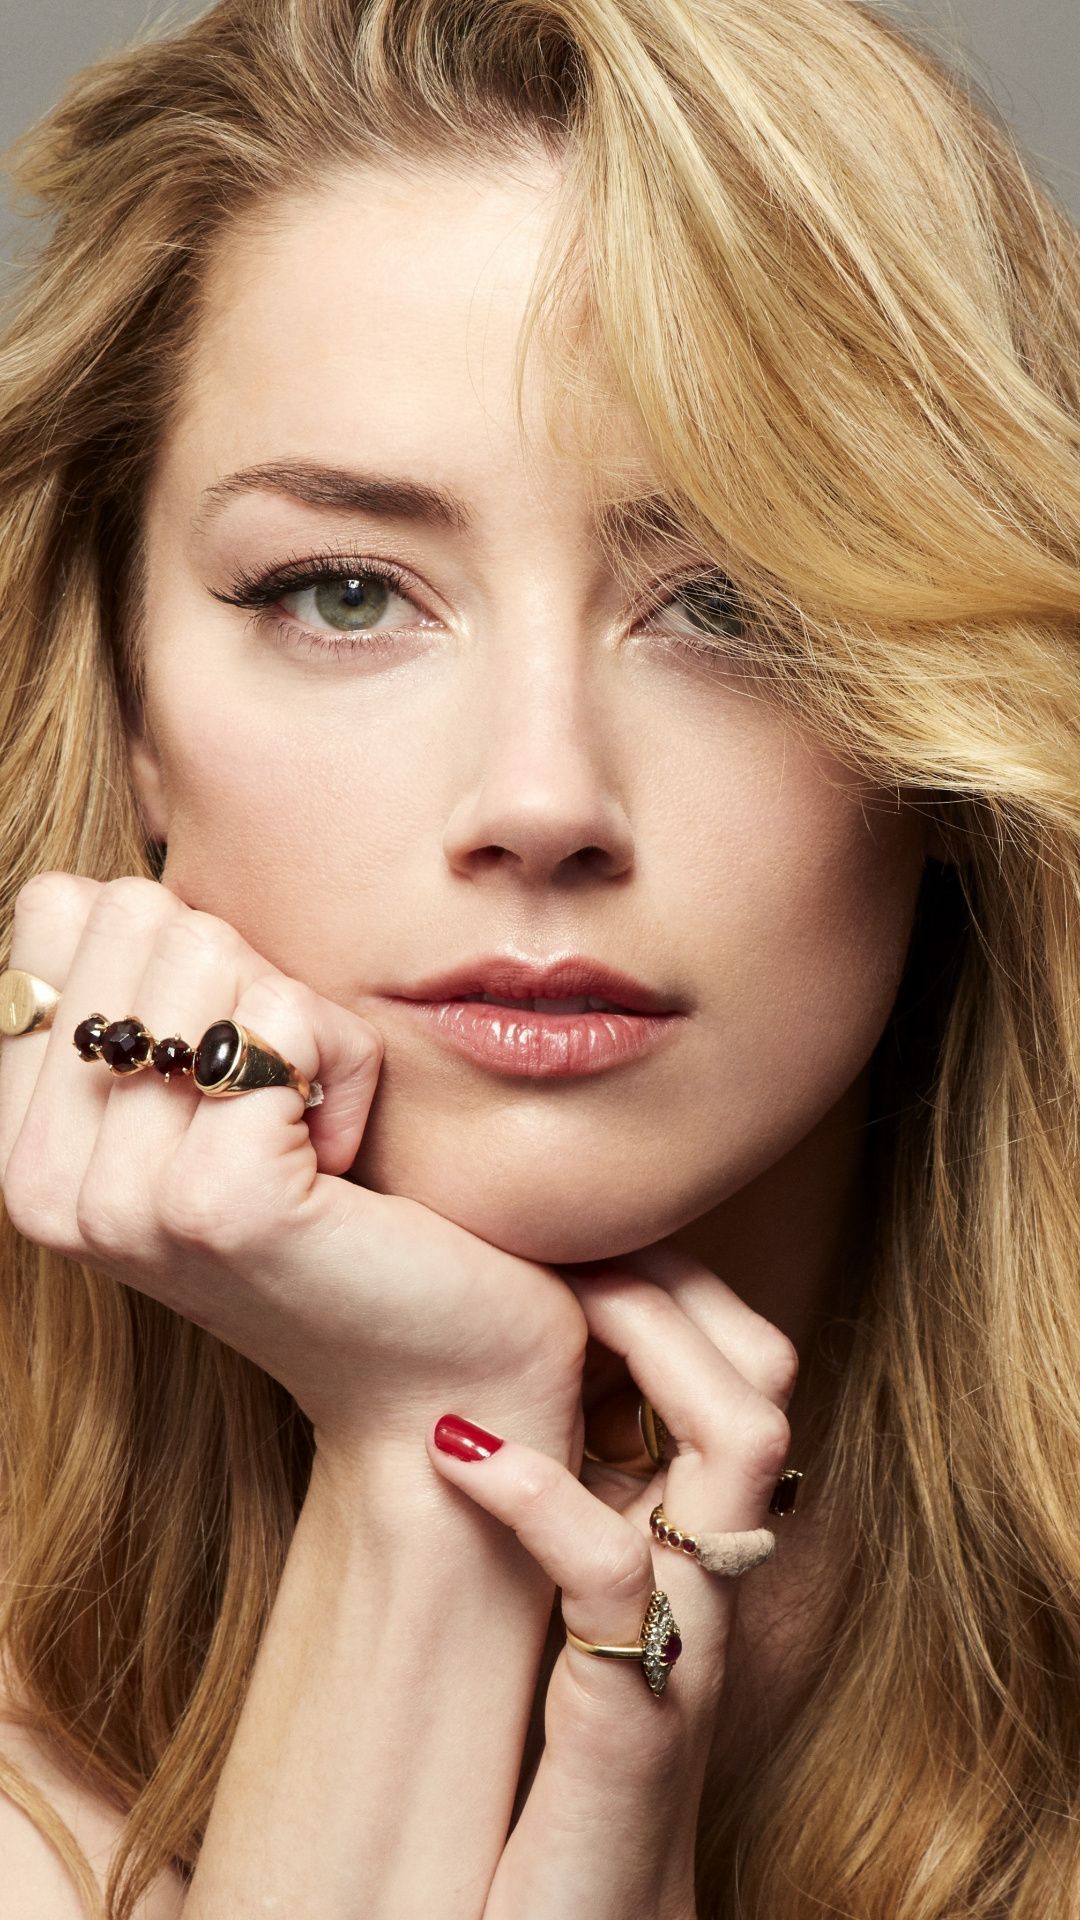 Amber Heard Famous Celebrity Red Head 1080x1920 Wallpaper Amber Heard Amber Heard Style Amber Head